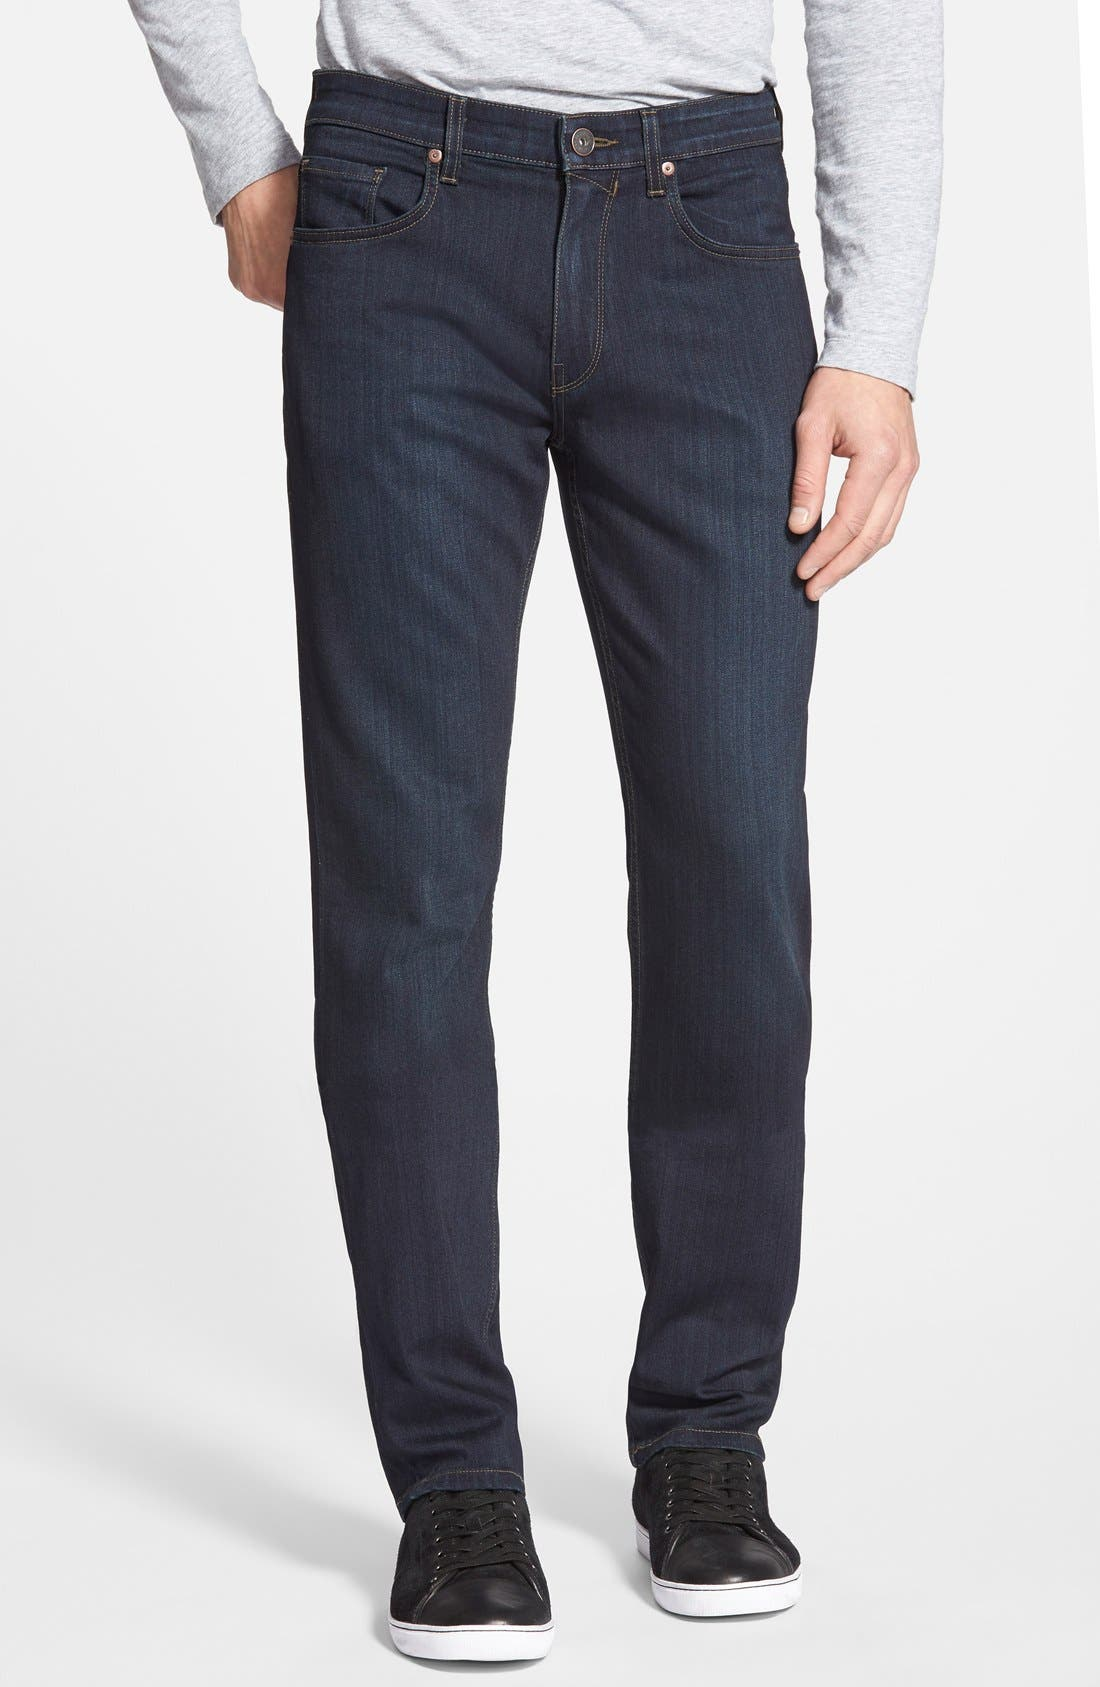 Men's Paige Transcend - Federal Slim Straight Leg Jeans